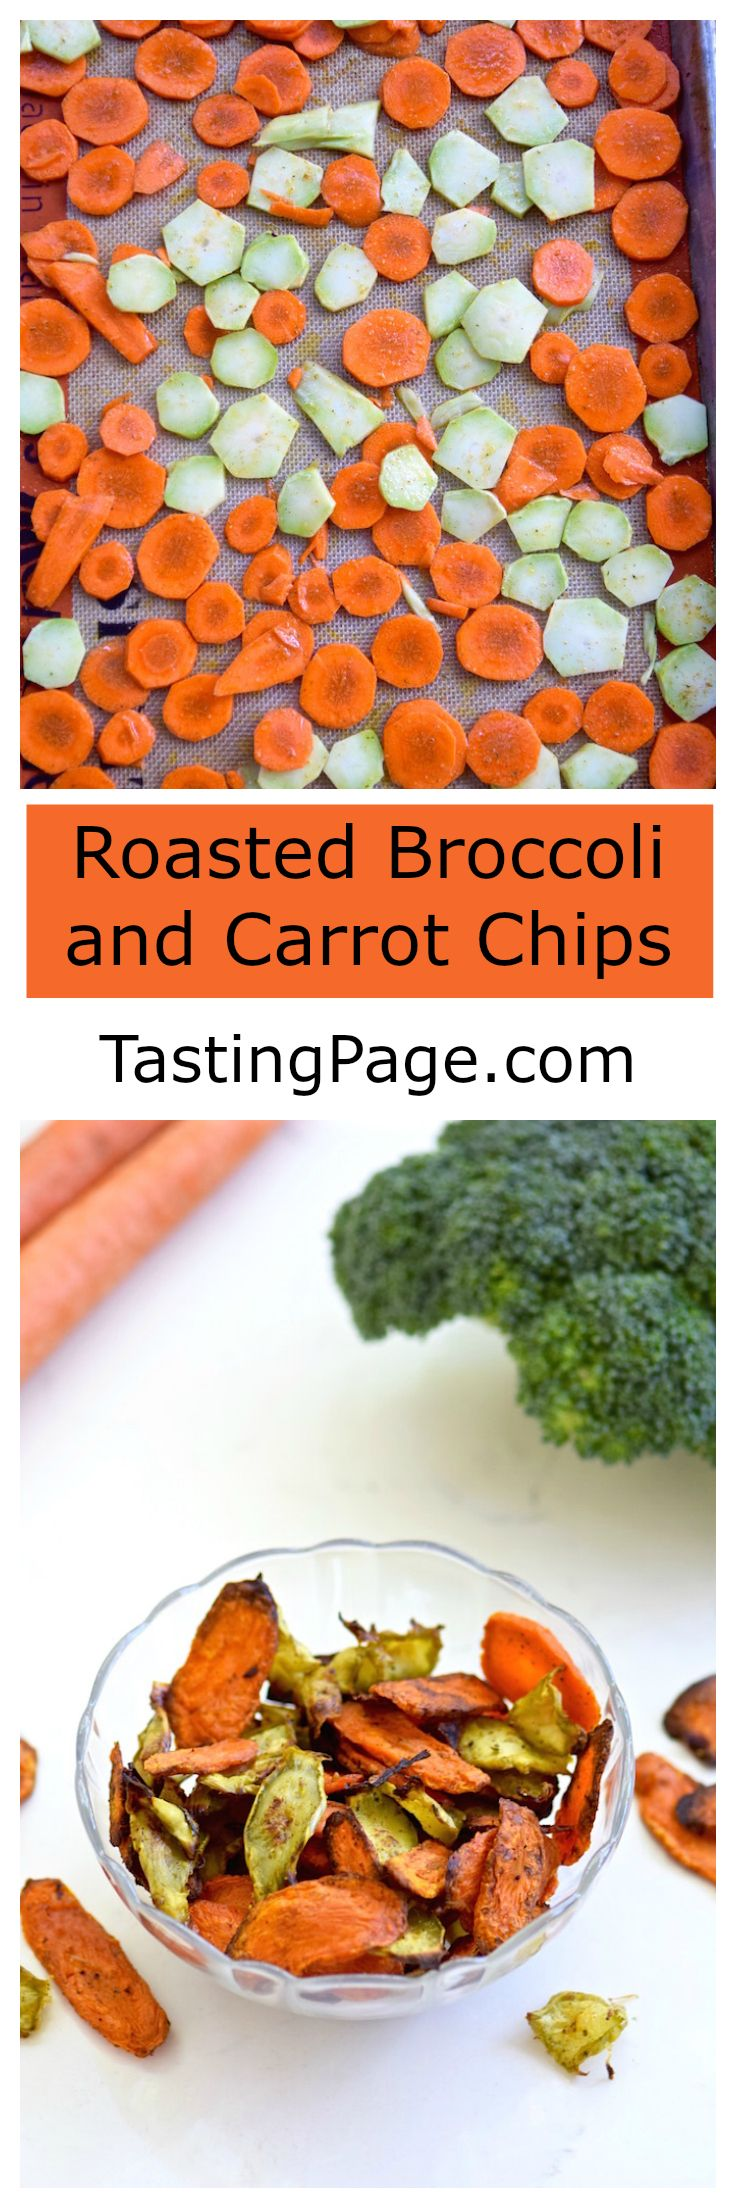 Carrot and Broccoli Chips - a healthy gluten free veggie snack | TastingPage.com